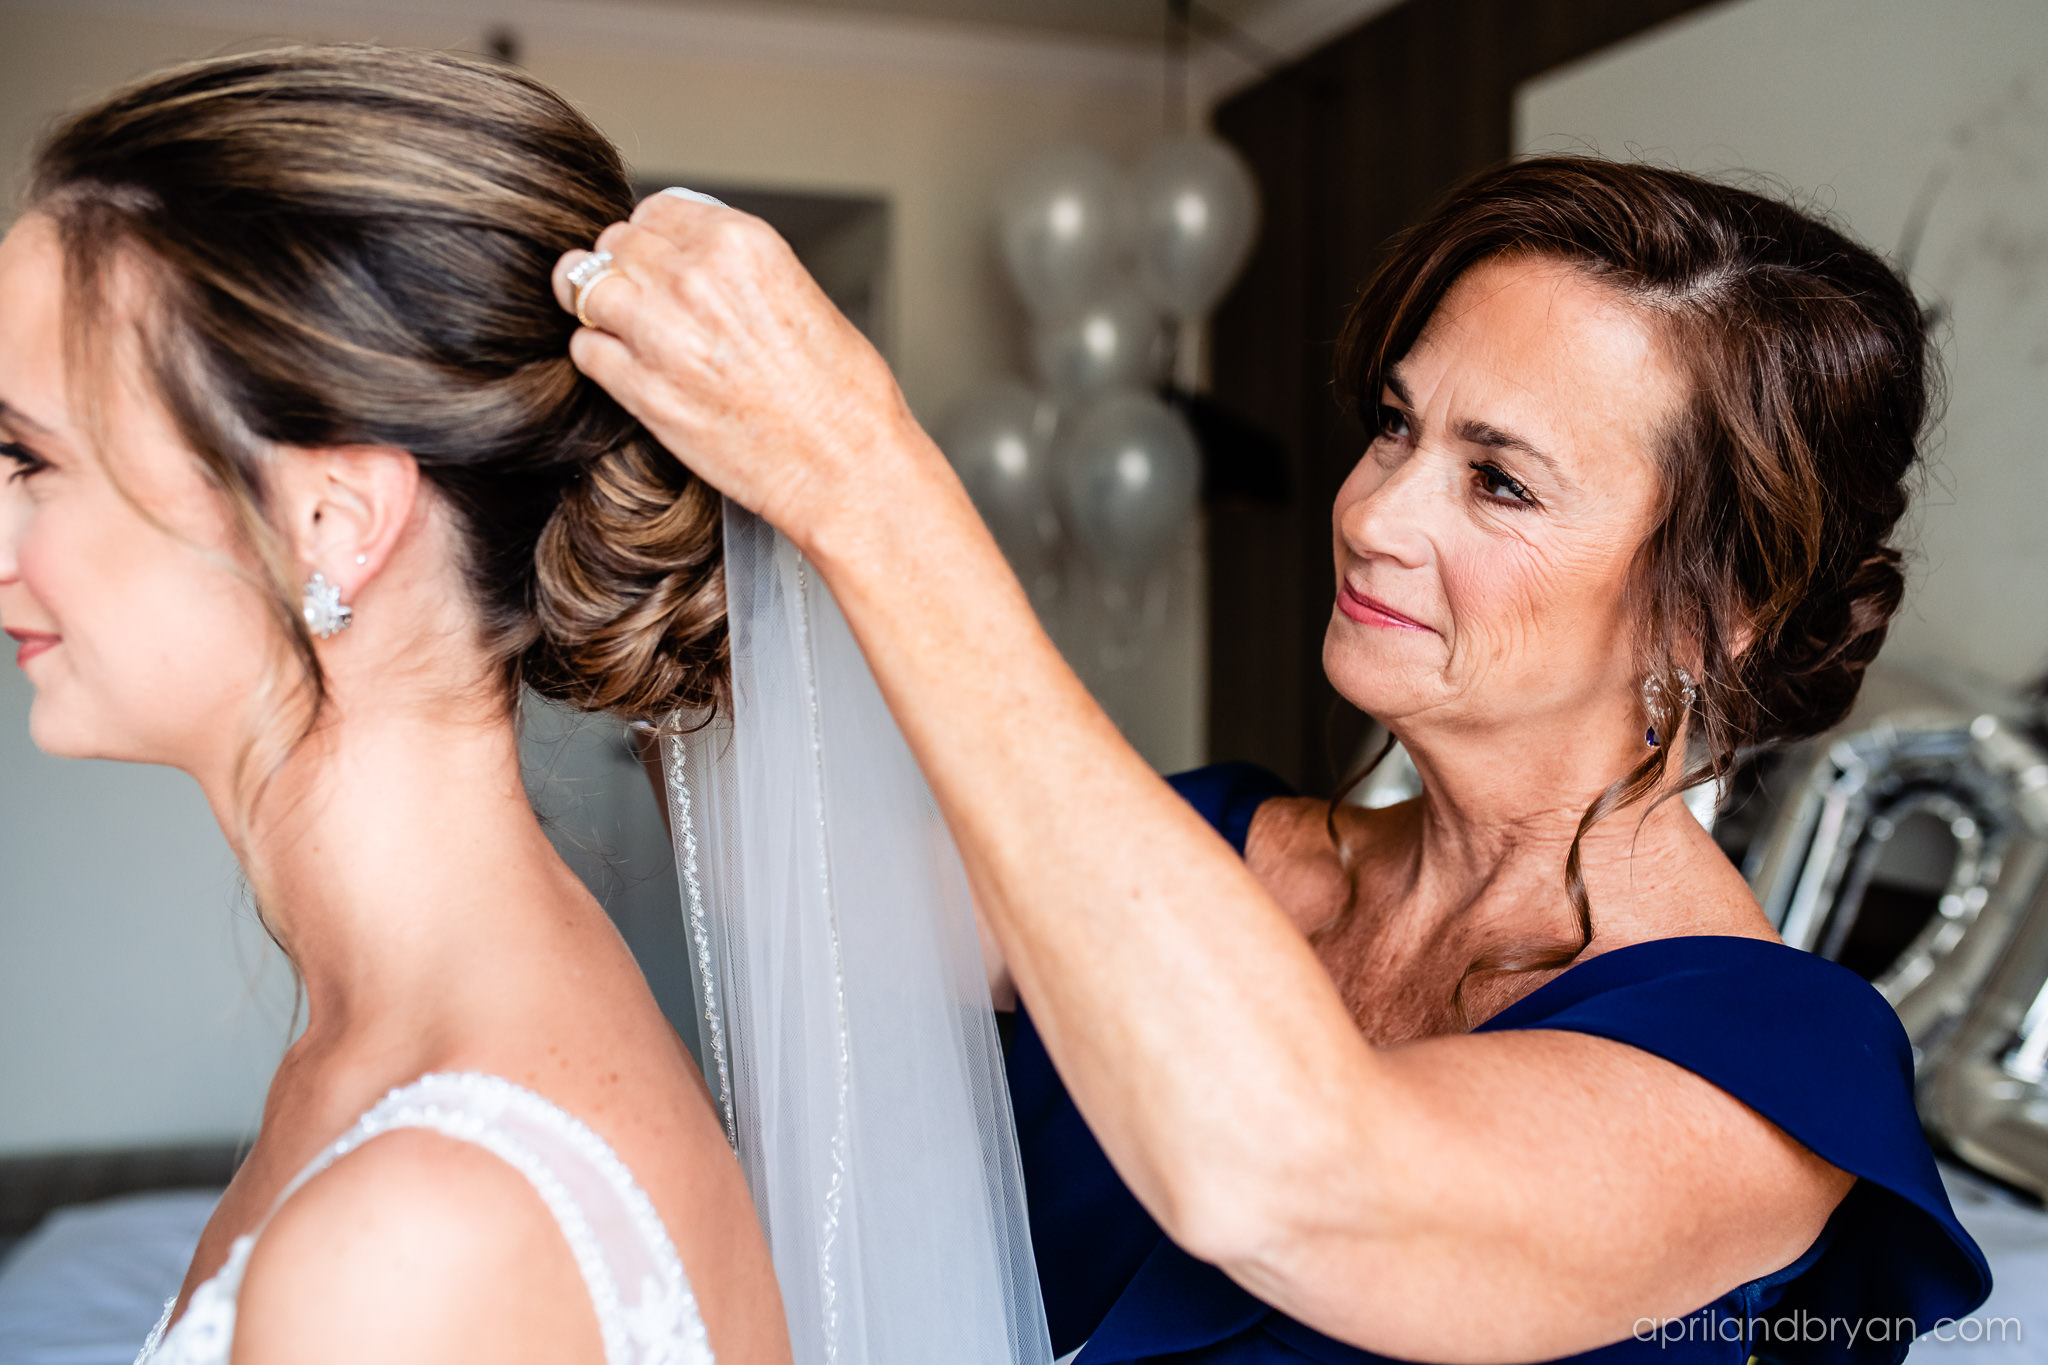 A mother helps her daughter get ready for her wedding day at the Franklin Institute in Philadelphia, PA. Moment captured by April & bryan Photography. Featured on Dream Weddings.